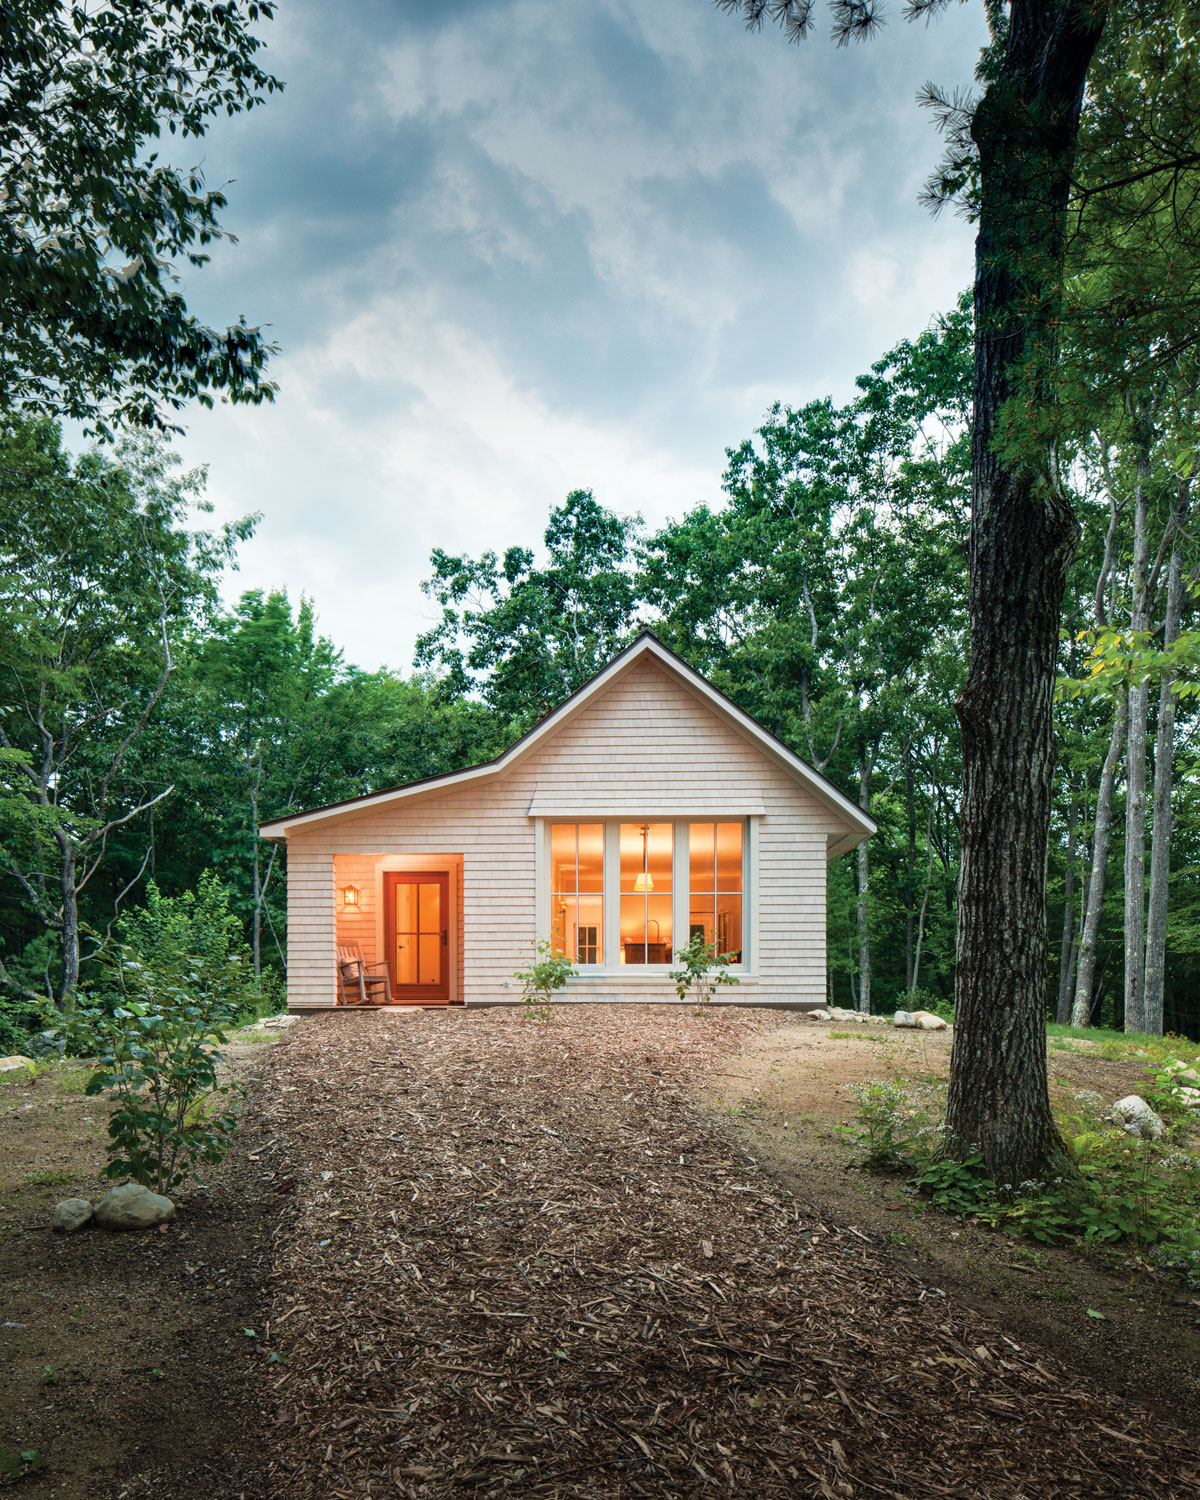 This 1,000-square-foot cutie with two bedrooms and a single bath is one of 12 prefab Go Homes offered by Belfast's GO Logic, which hews to strict Passive House energy standards.